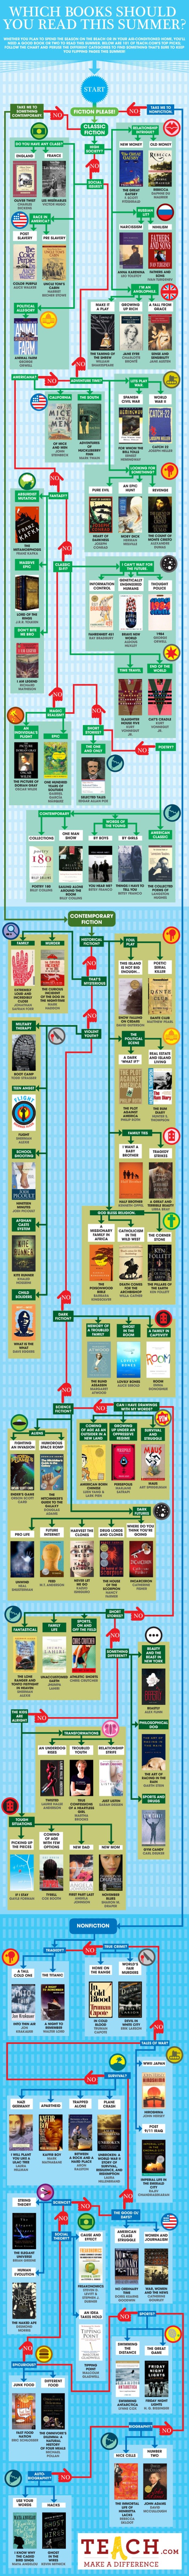 Summer Reading Flowchart: What Should You Read On Your Break? | Coaching Leaders | Scoop.it